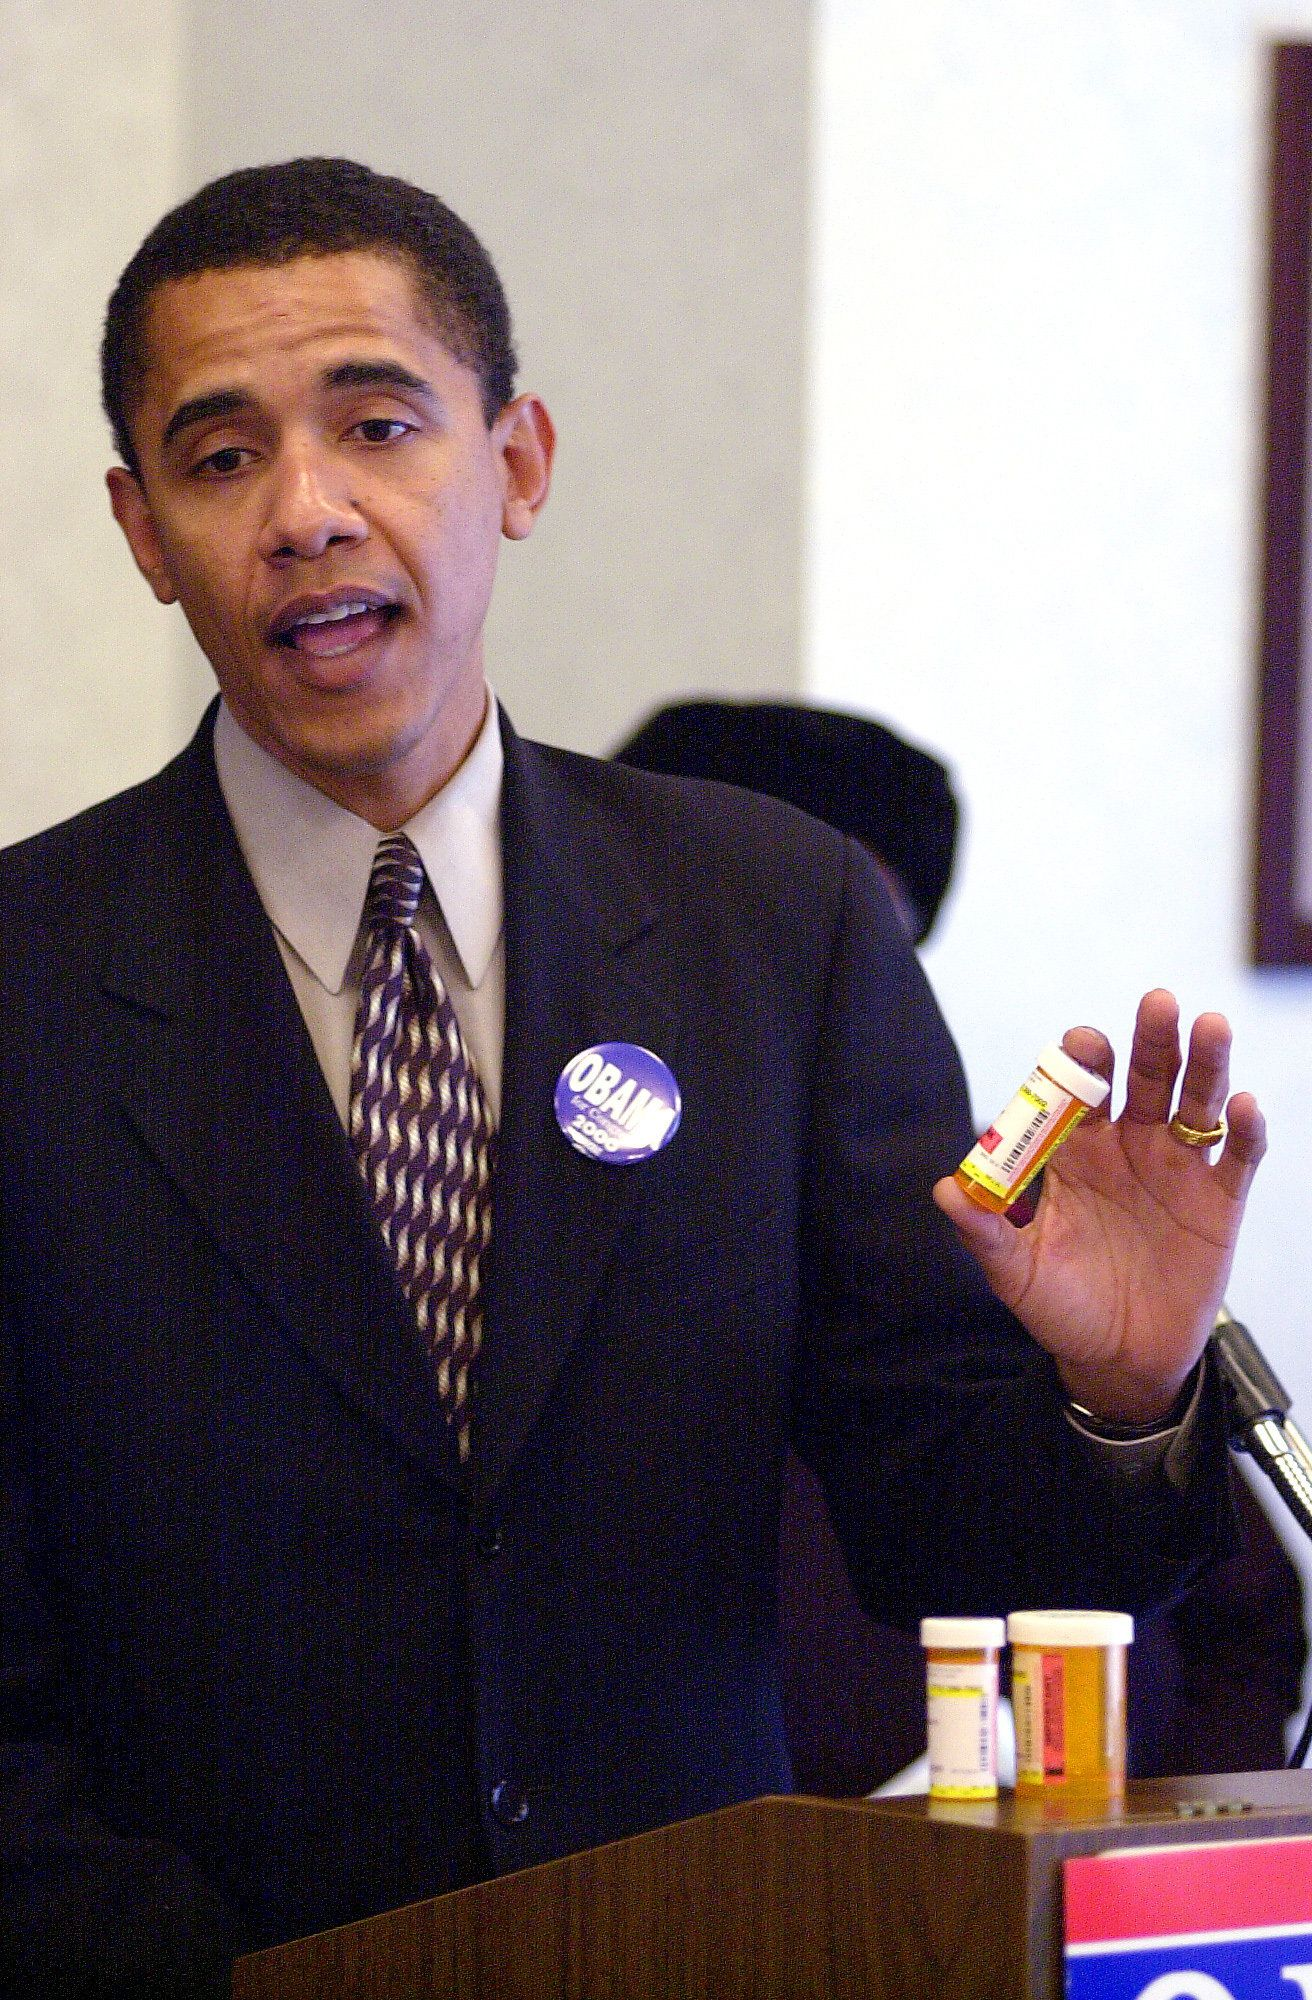 Then-Illinois State Senator Barack Obama, shown January 16, 2000 in Chicago, Illinois, worked with Democrats, Republicans and especially with police and prosecutors to fashion a bill to overhaul the death-penalty law that all of them could support. By the time it reached the Senate floor, everyone was on board. It passed in a unanimous vote, and is now Illinois law. How Obama did it reveals a lot about his political style, which is at the core of his appeal. It defines an approach to political problem solving that he vows can change how Washington does business.  (Photo by Phil Velasquez/Chicago Tribune/MCT via Getty Images)